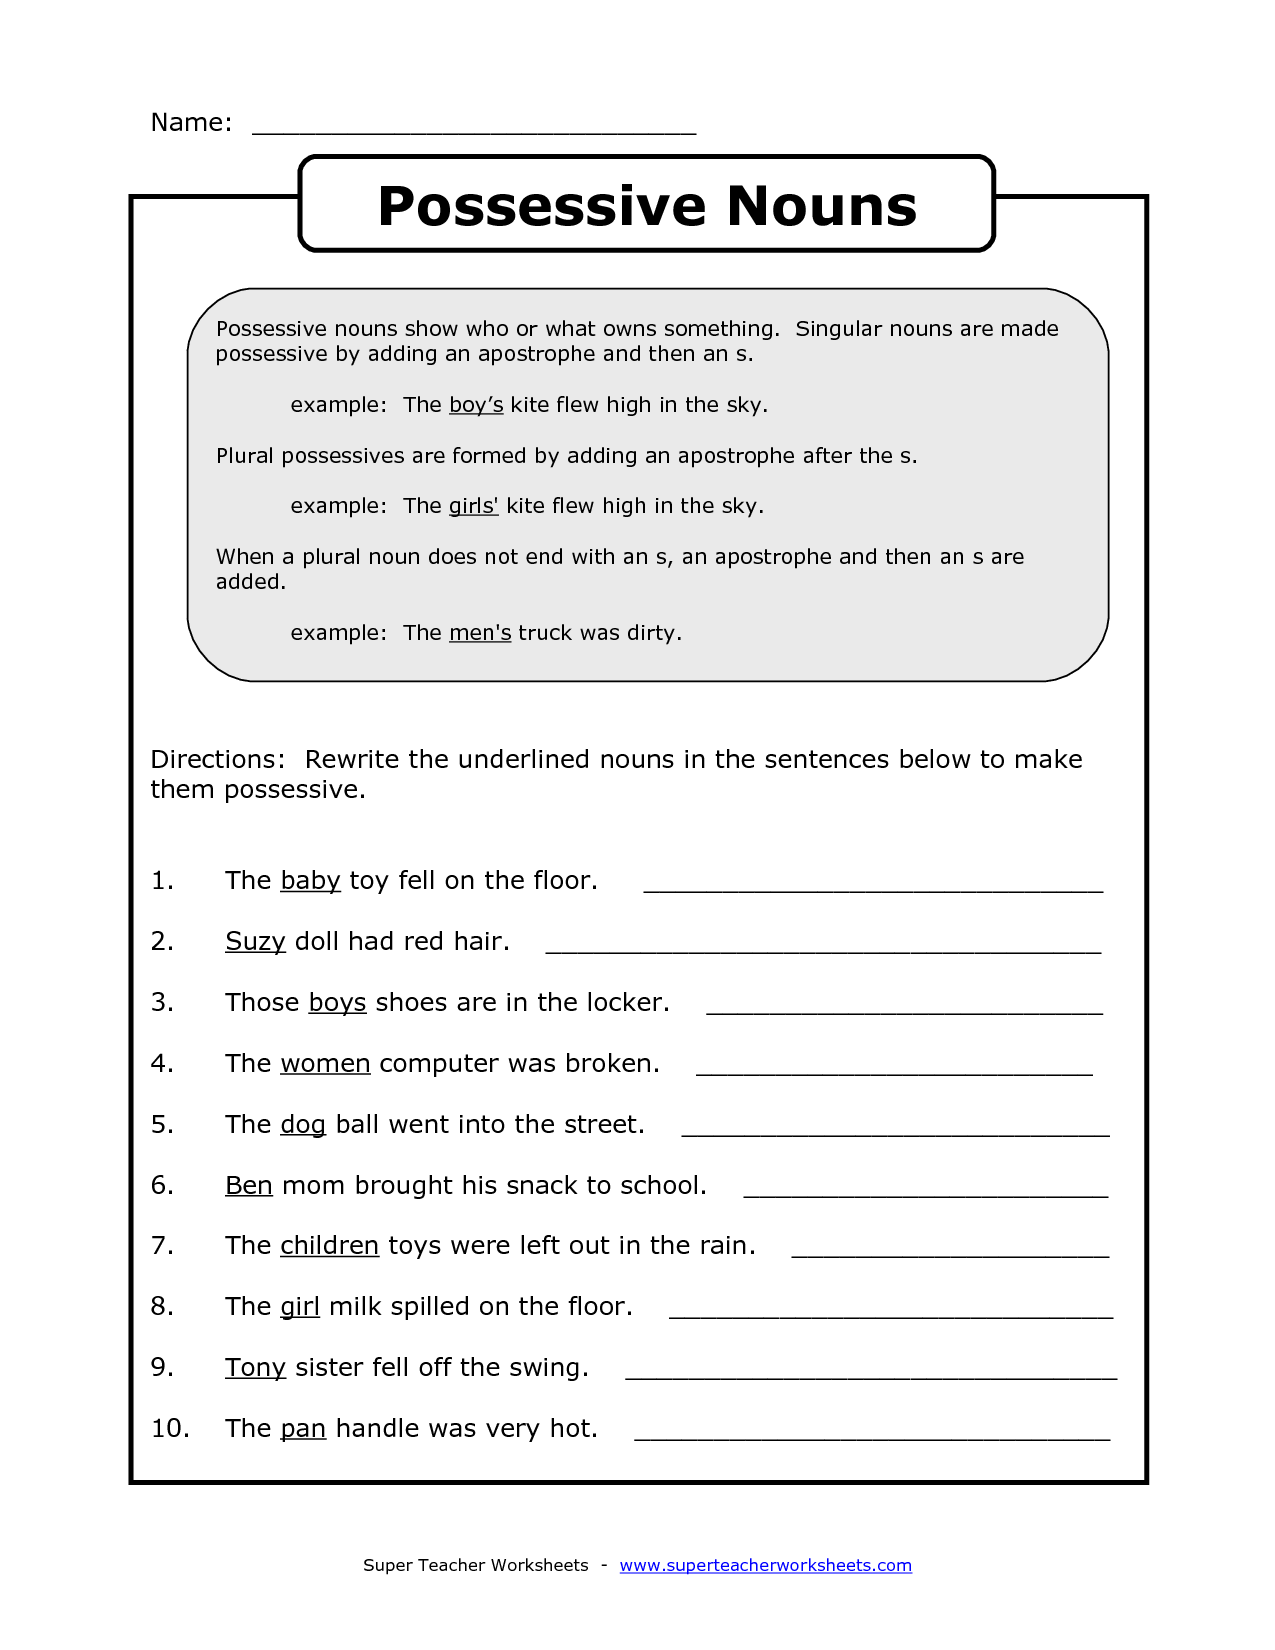 Worksheets Teacher Worksheets For 3rd Grade posessive nouns google search more